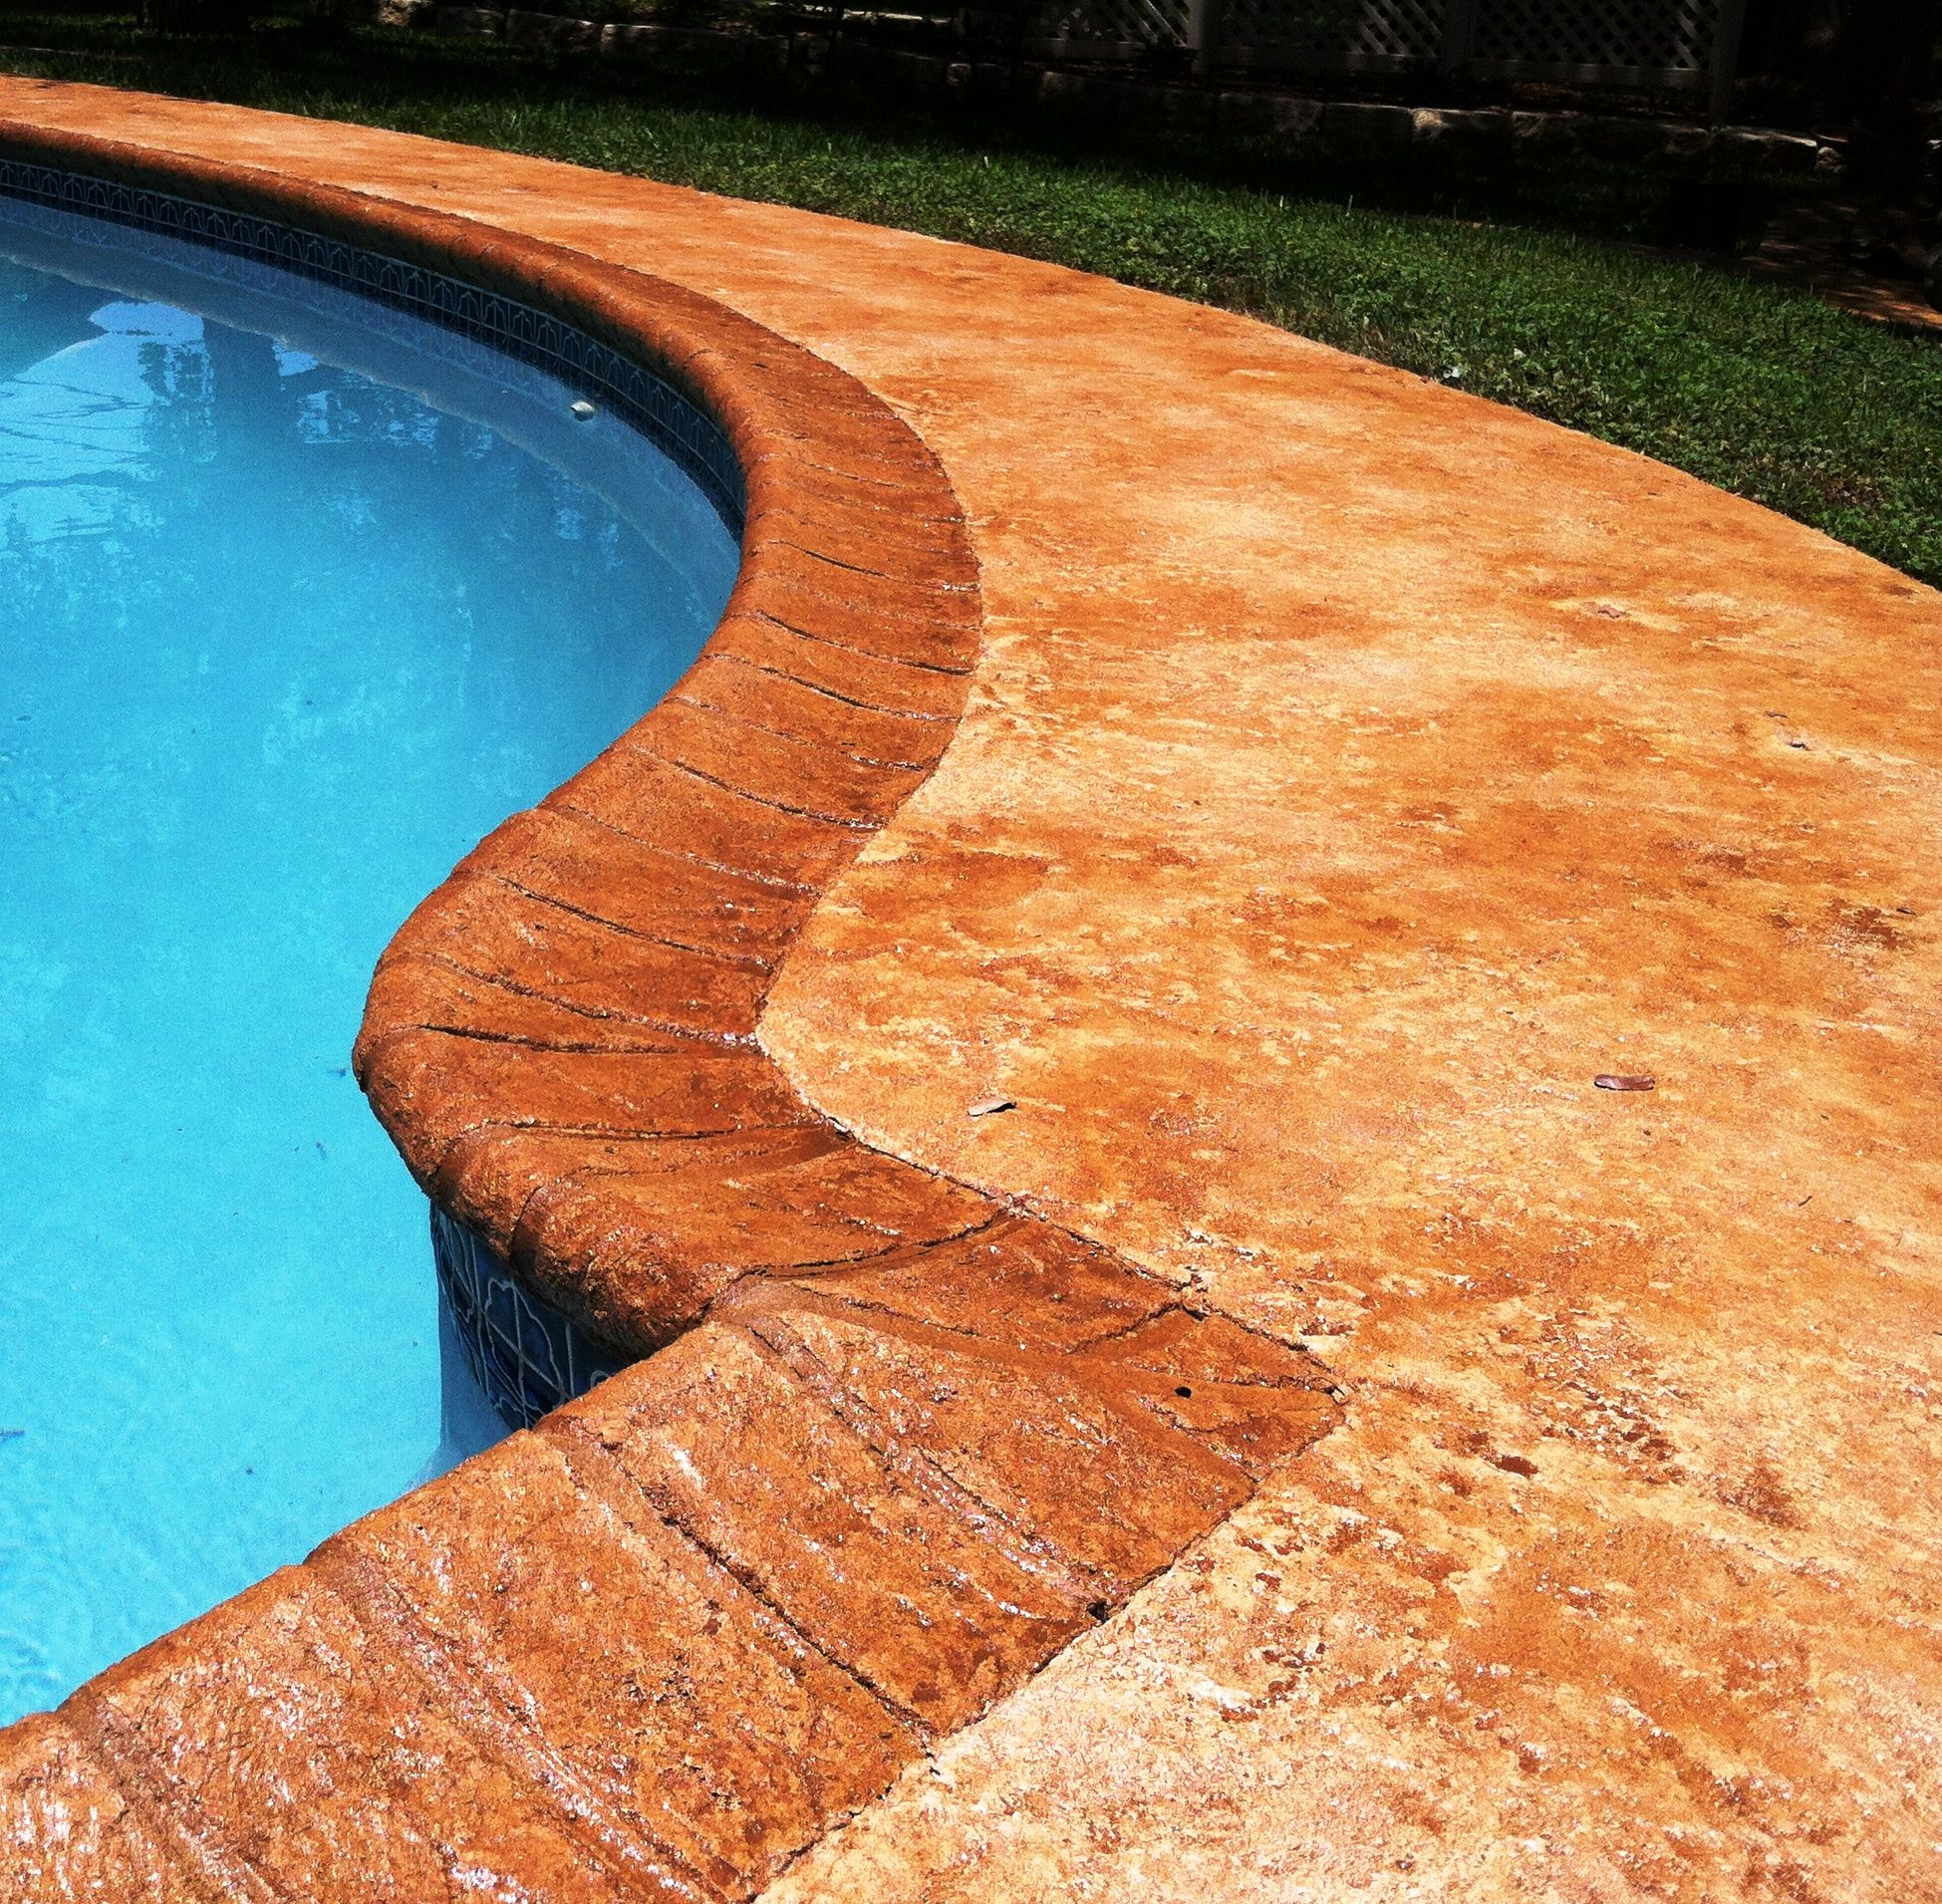 sundek sunstamp decorative concrete overlay system for a pool deck